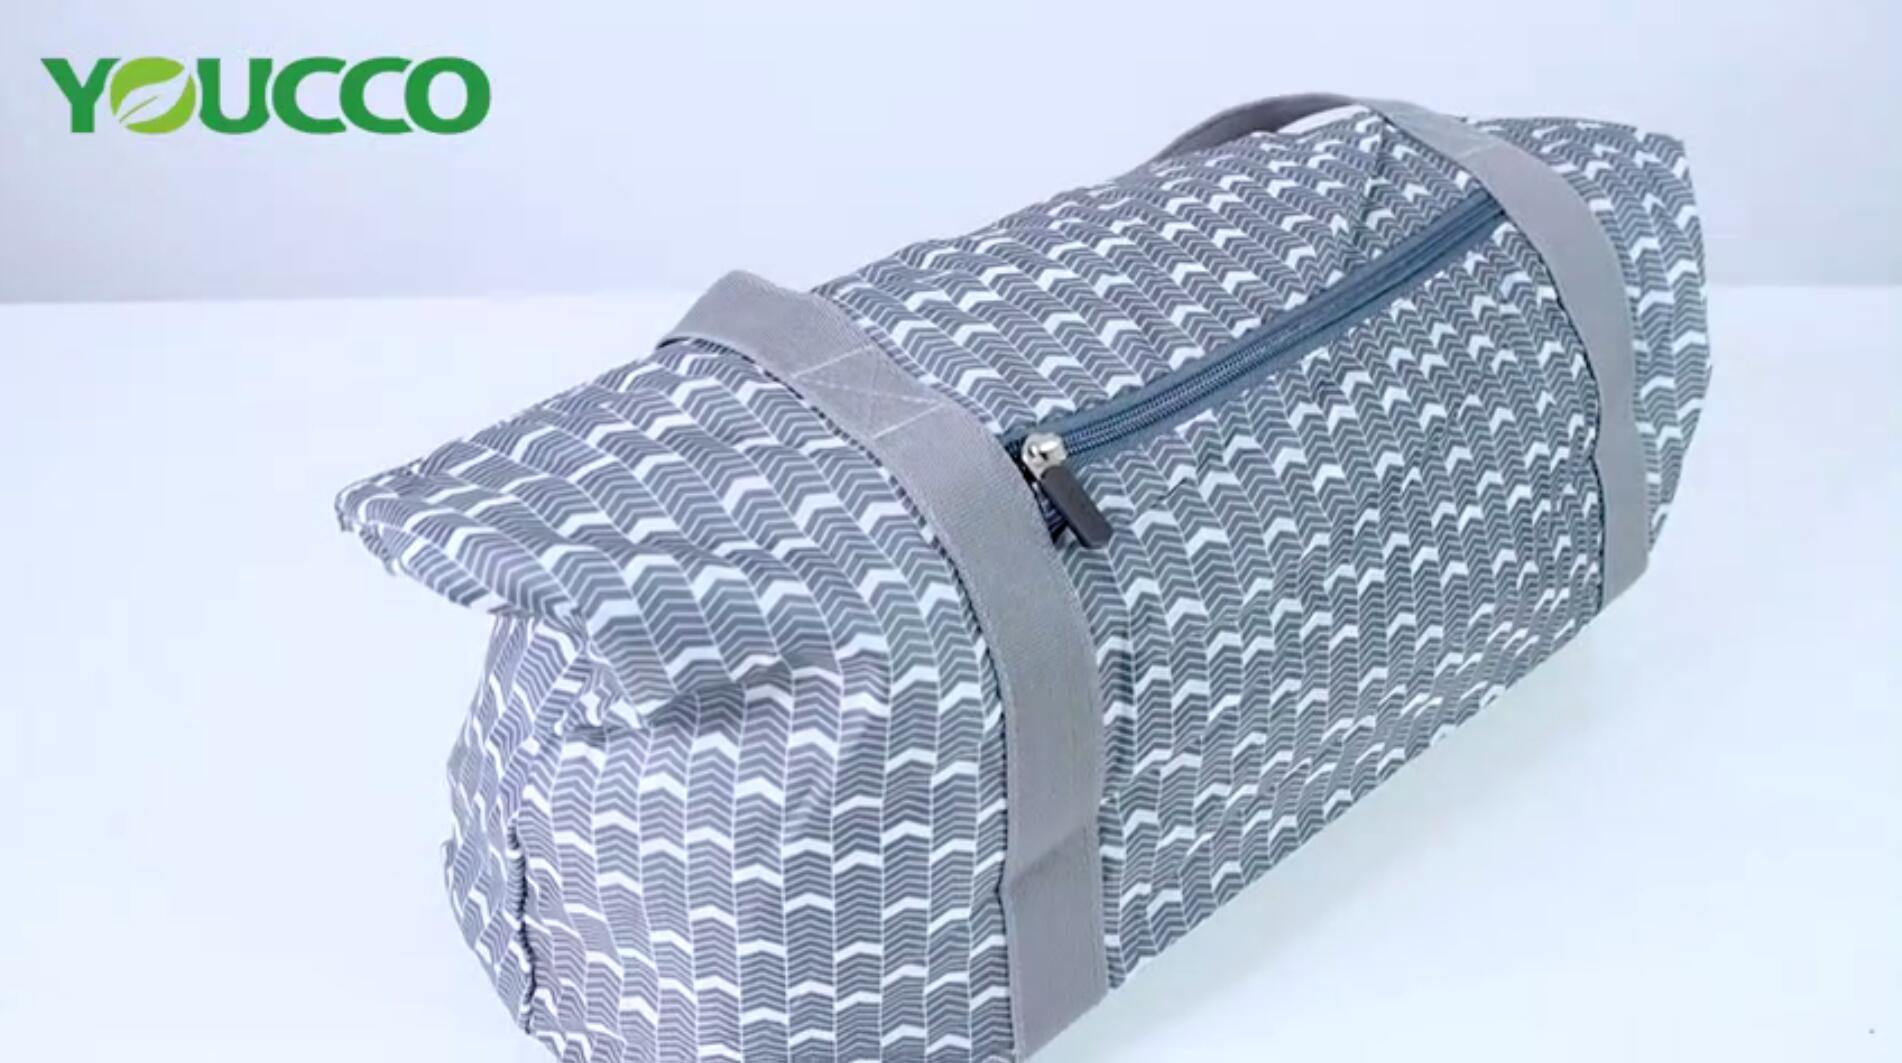 The Best Foldable Packable Travel Lightweight Luggage Duffel Weekend Bag 210113